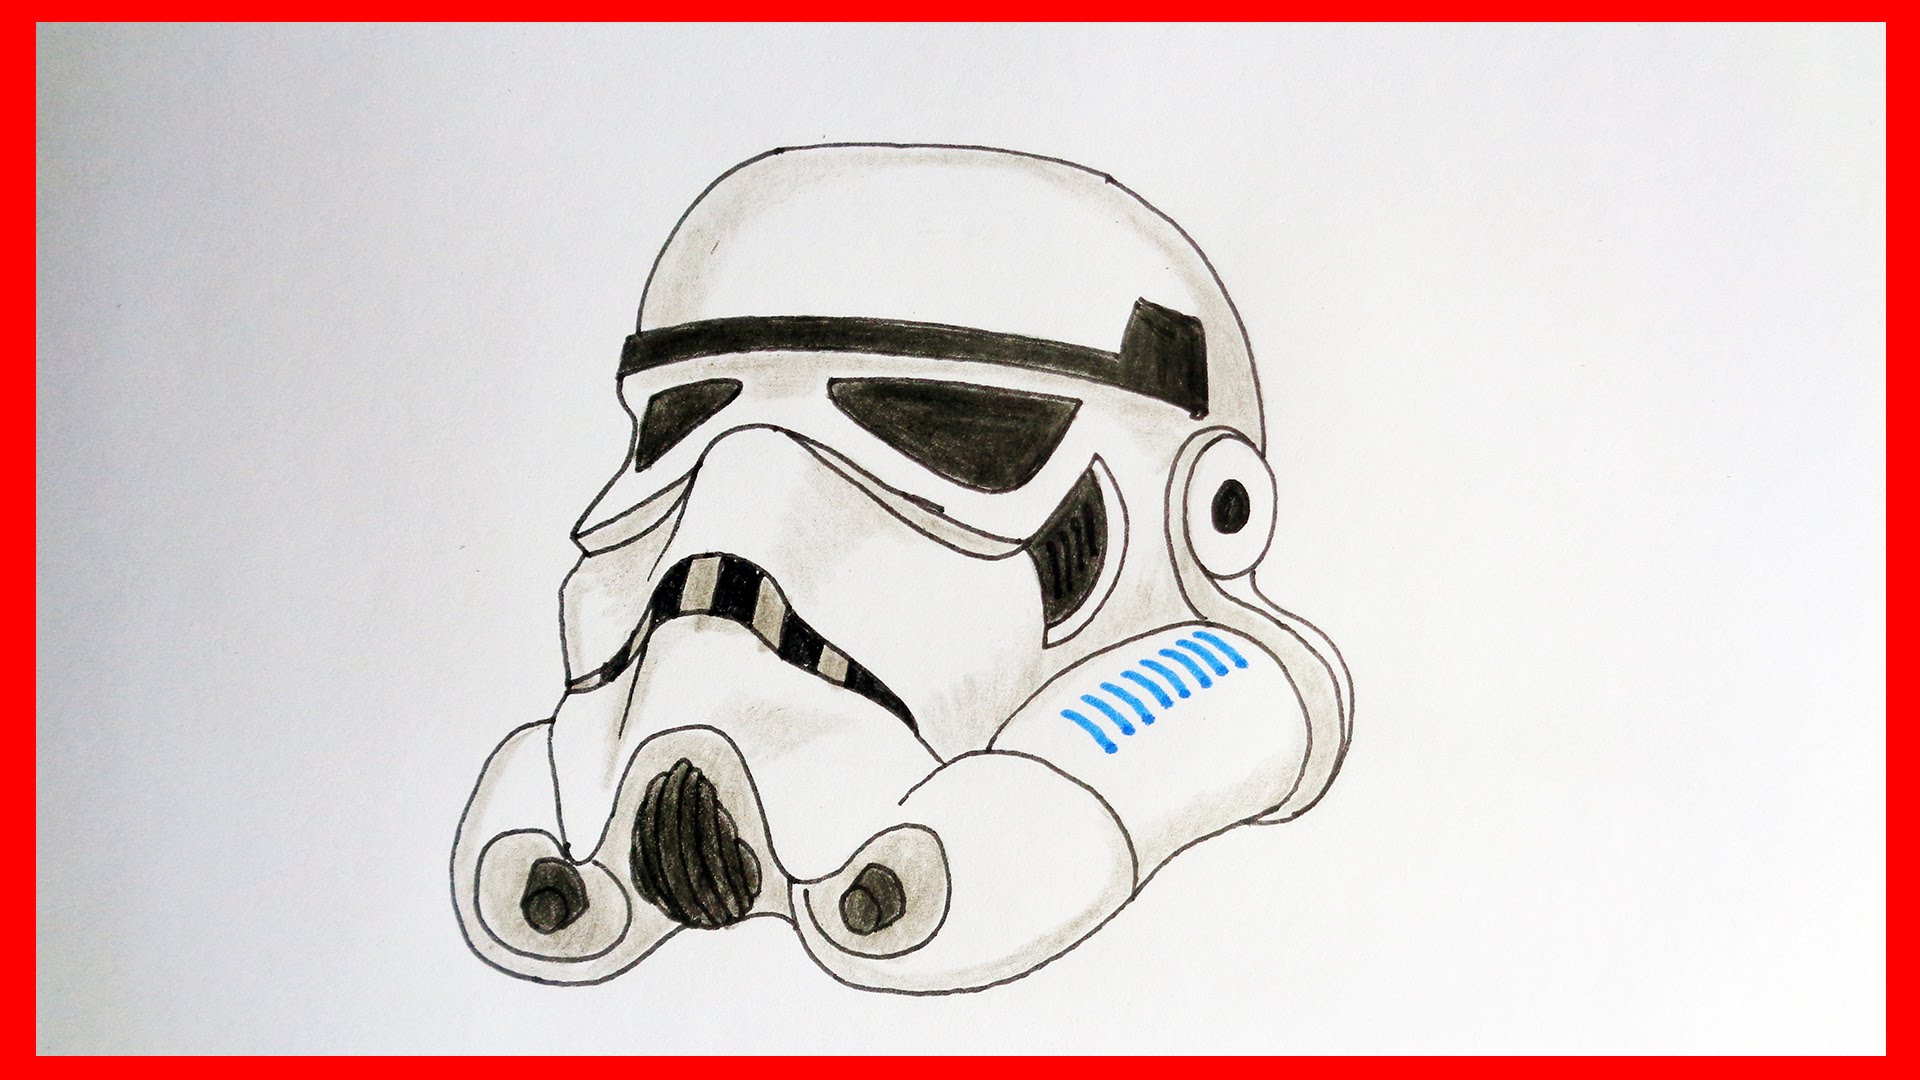 1920x1080 How To Draw Stormtrooper, Star Wars Characters